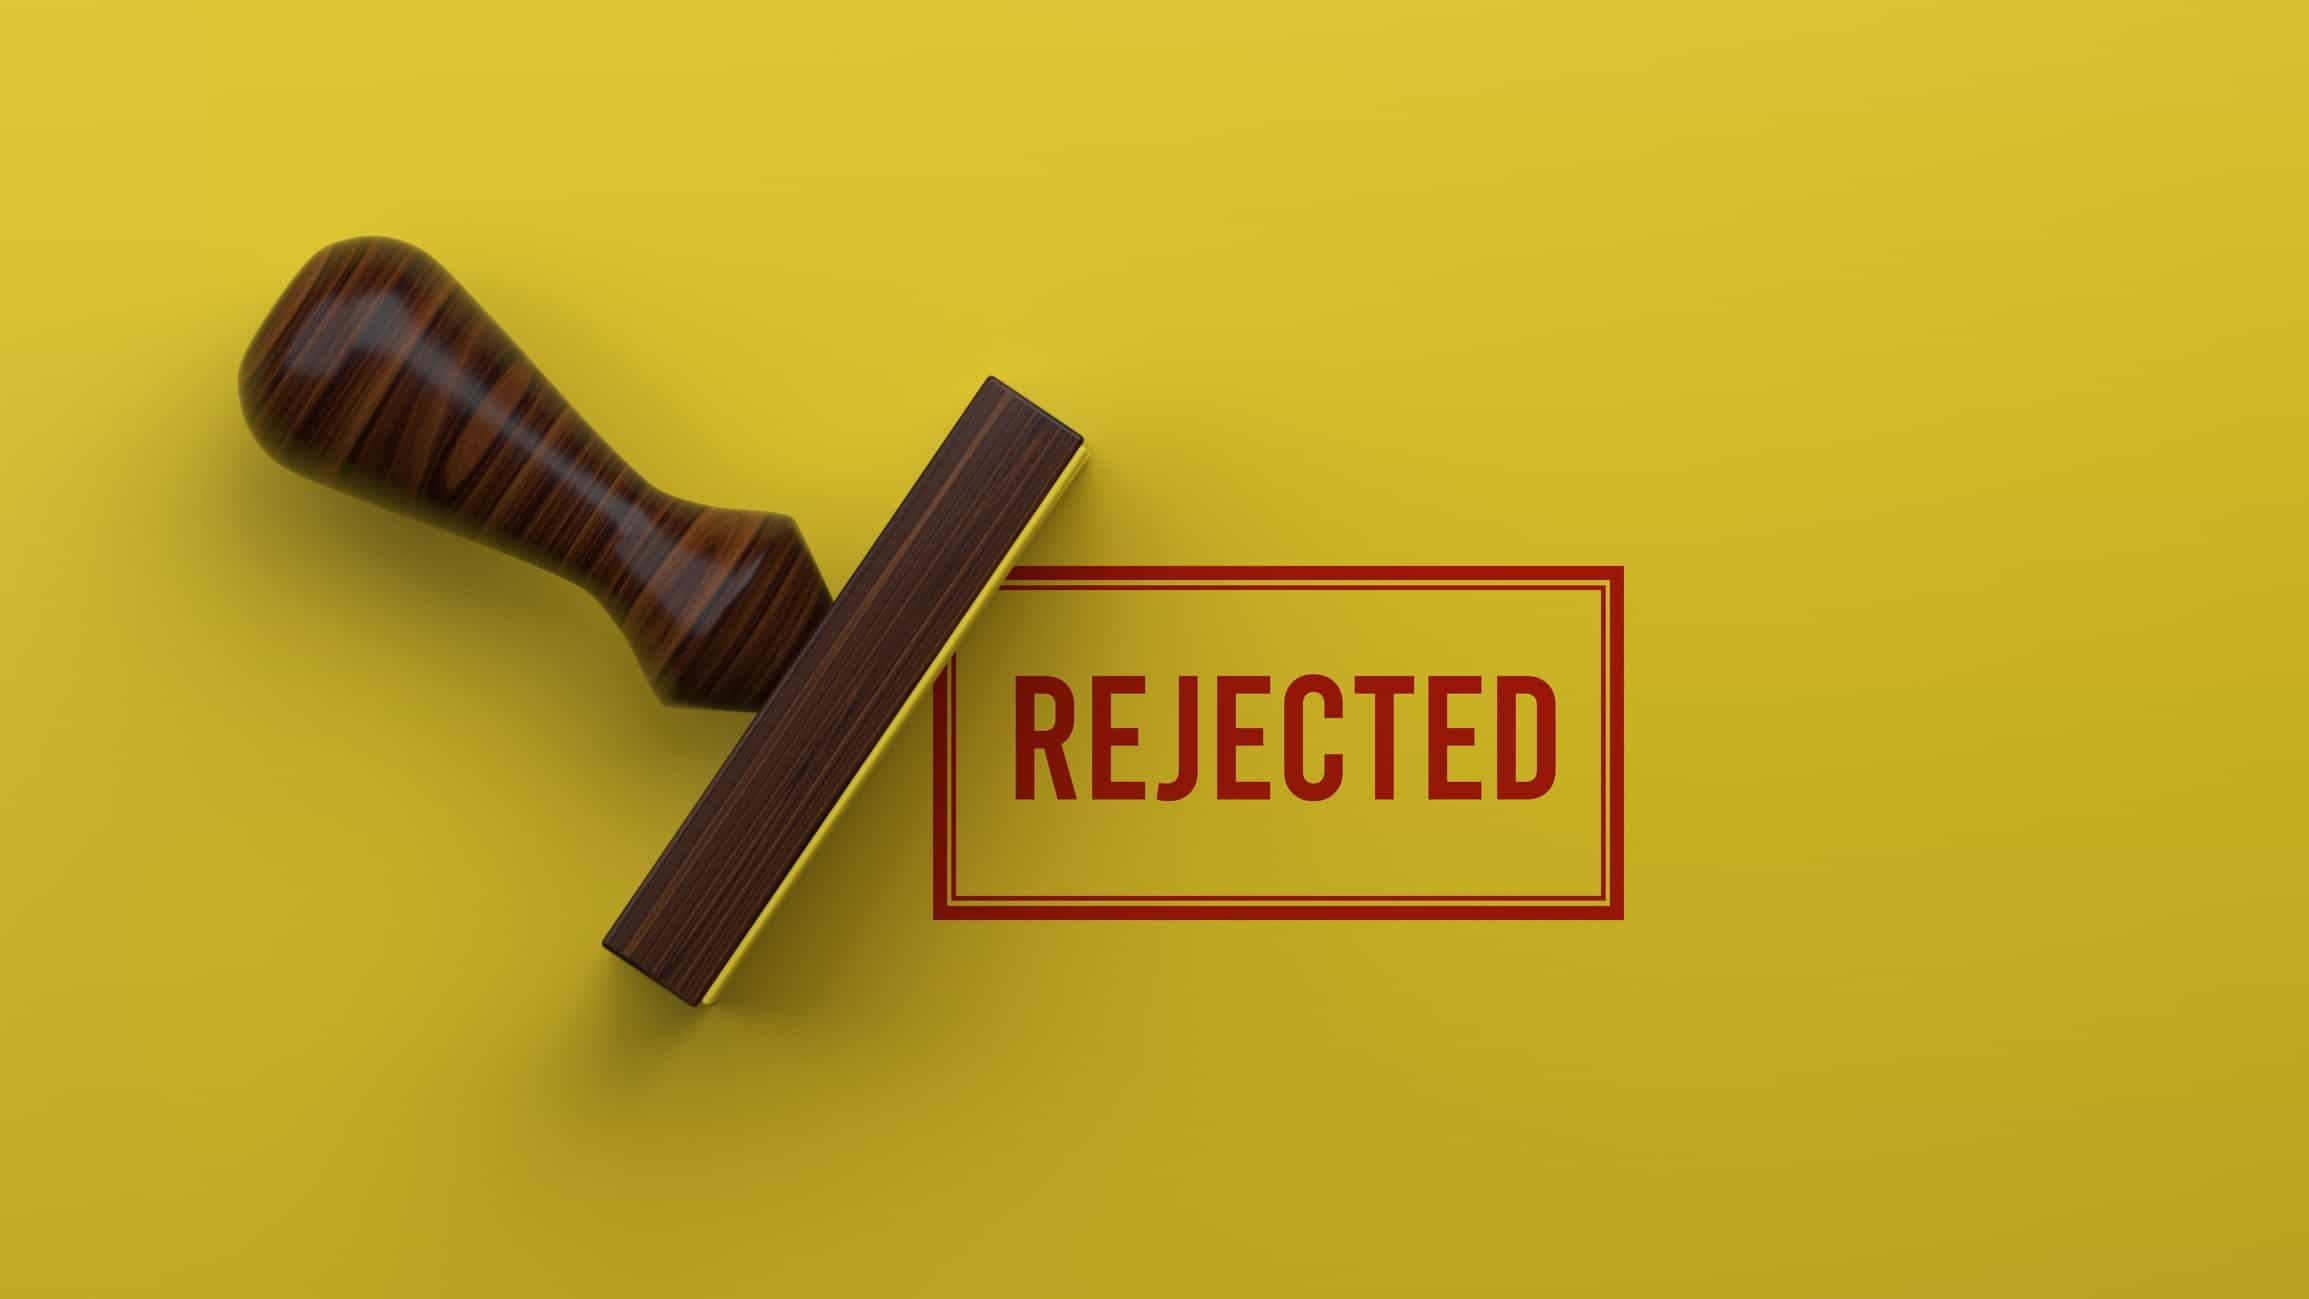 rubber stamp stamping the word 'rejected' on yellow background